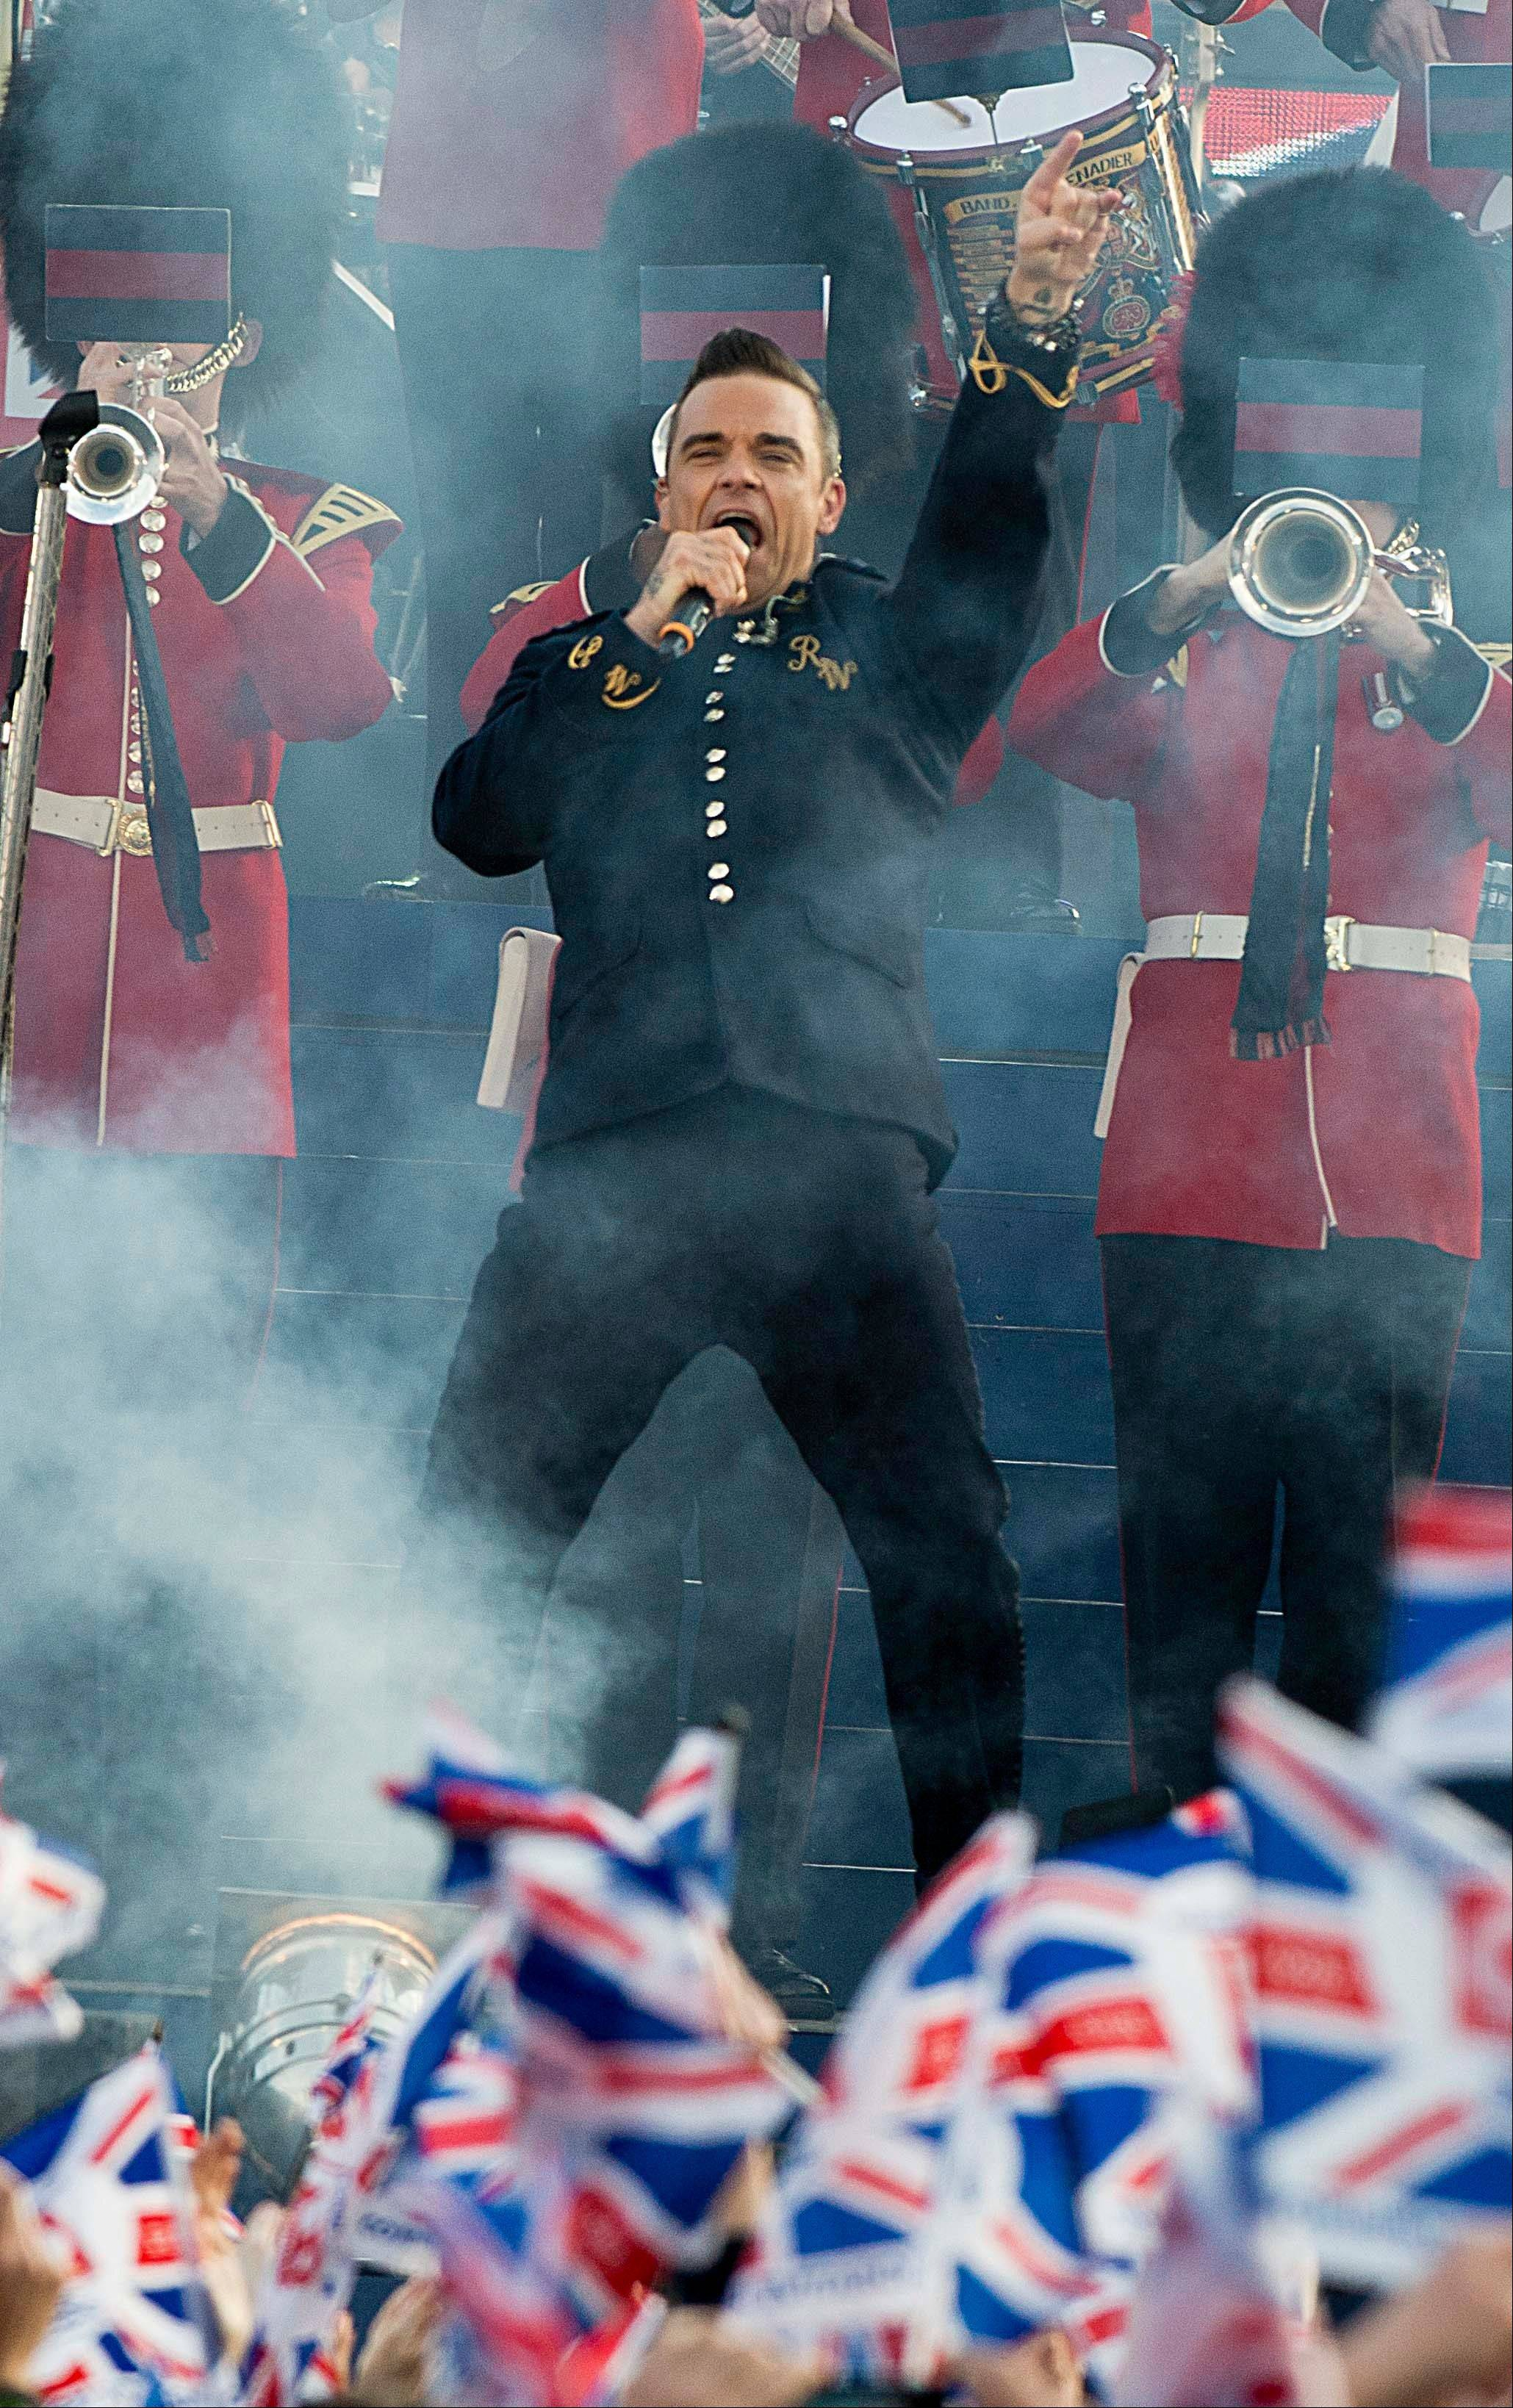 Robbie Williams performs at the Queen's Jubilee Concert in front of Buckingham Palace, London, Monday, June 4, 2012. The concert is a part of four days of celebrations to mark the 60-year reign of Britain's Queen Elizabeth II.